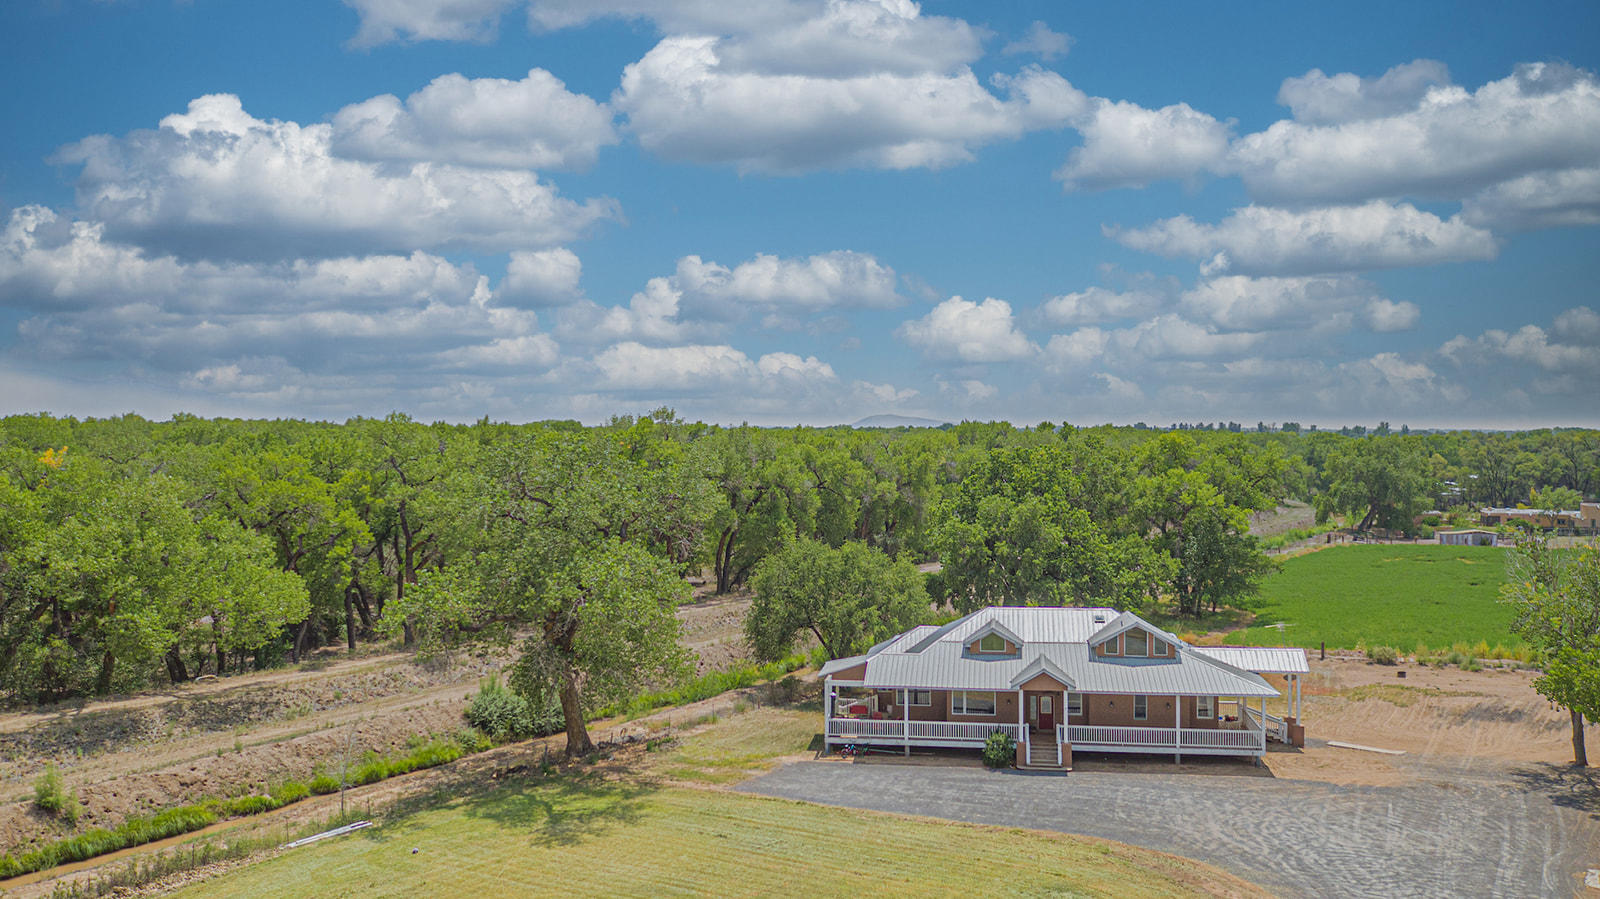 Looking for the perfect country home? Look no further! This amazing home is located against the Rio Grande River on 2 gorgeous acres in the heart of Los Lunas. This country home is complete with over 2,200 sq. ft. 3 bedroom, 2.25 bath, wood floors, large wood windows that give natural lighting throughout, refrigerated air, kitchen island, coffee bar and so much more. Come take a look at this gorgeous property with wrap around porches it won't disappoint.